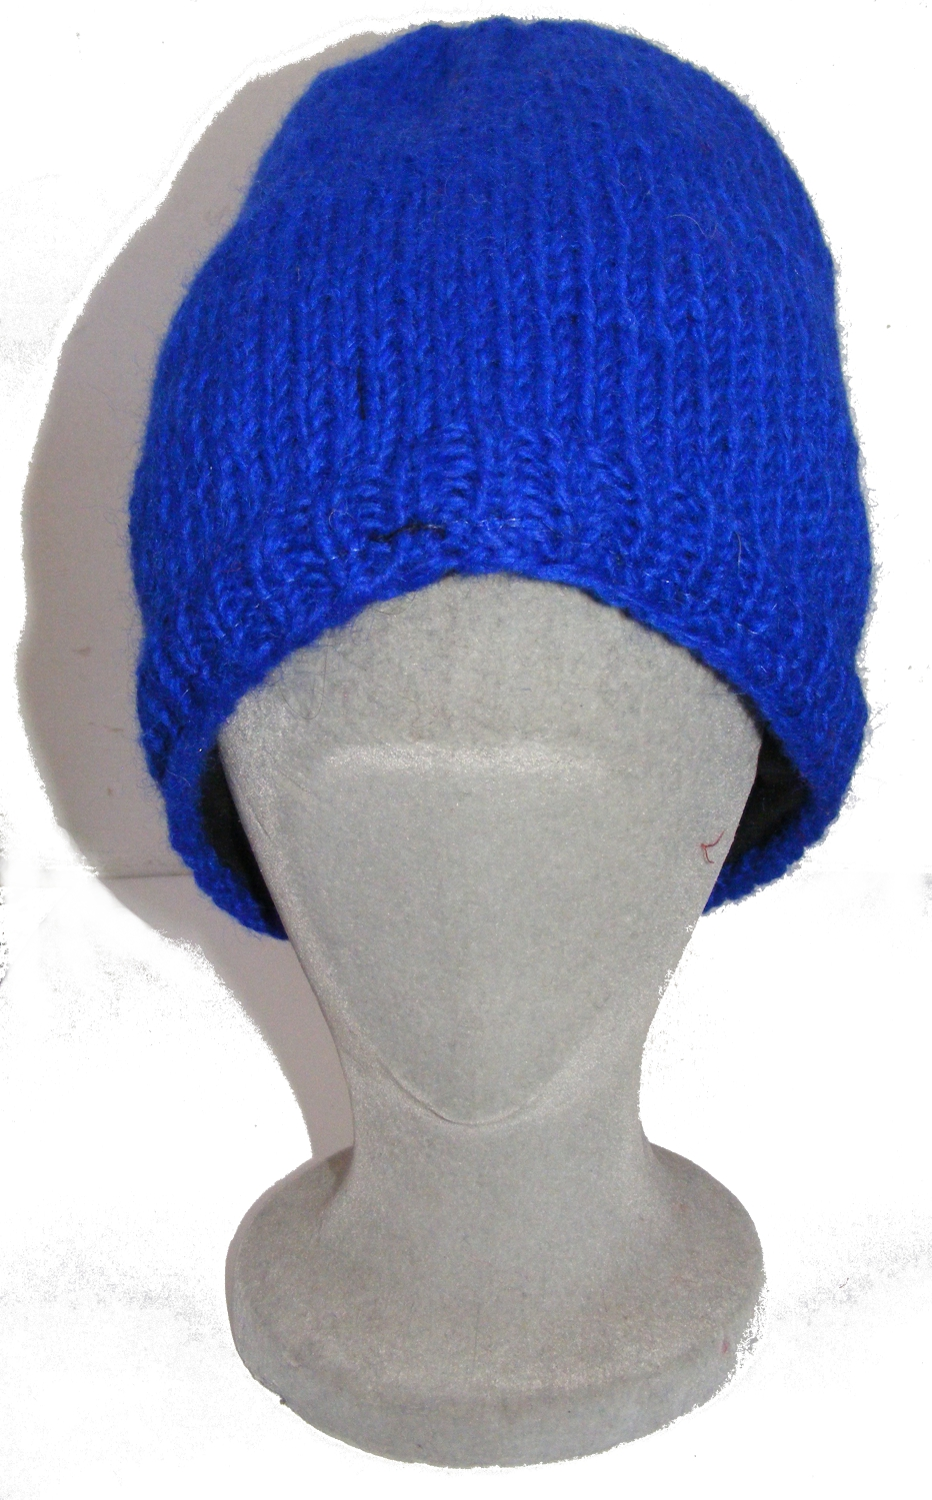 346f507550aed ... Cool Handknitted Woollen Blue Slouch Beanie Hat with fleece lining  ideal for skaters and snowboarders